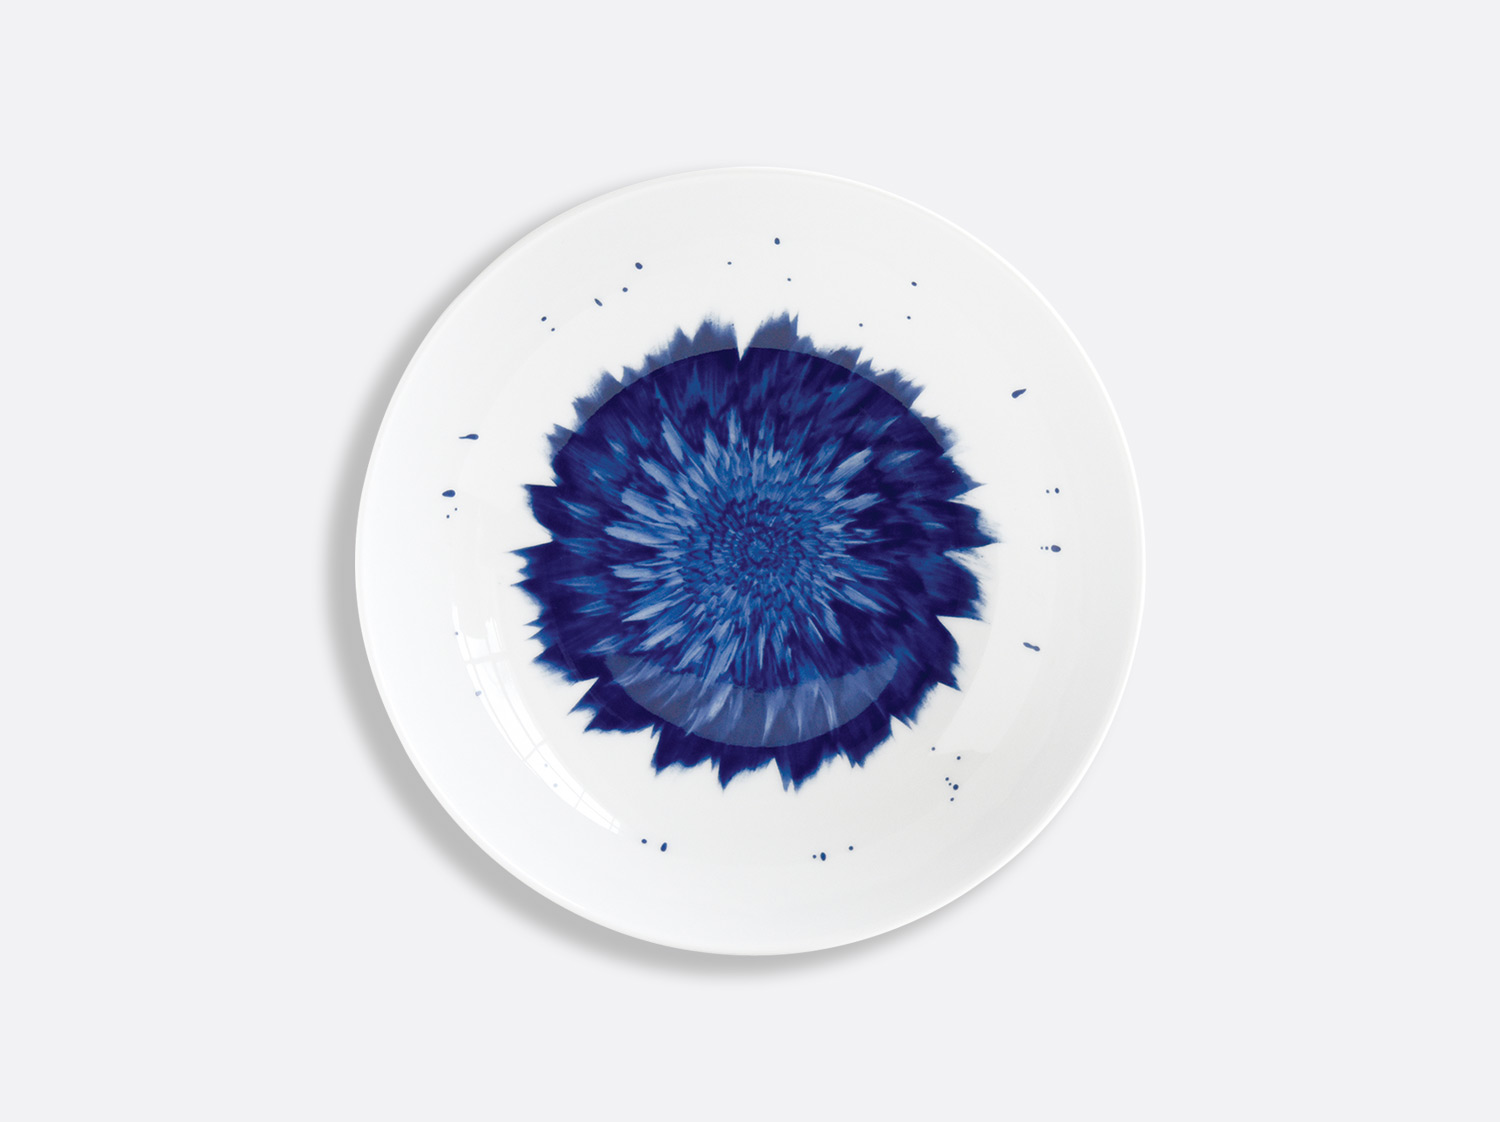 Assiette creuse calotte 19 cm en porcelaine de la collection IN BLOOM - Zemer Peled Bernardaud